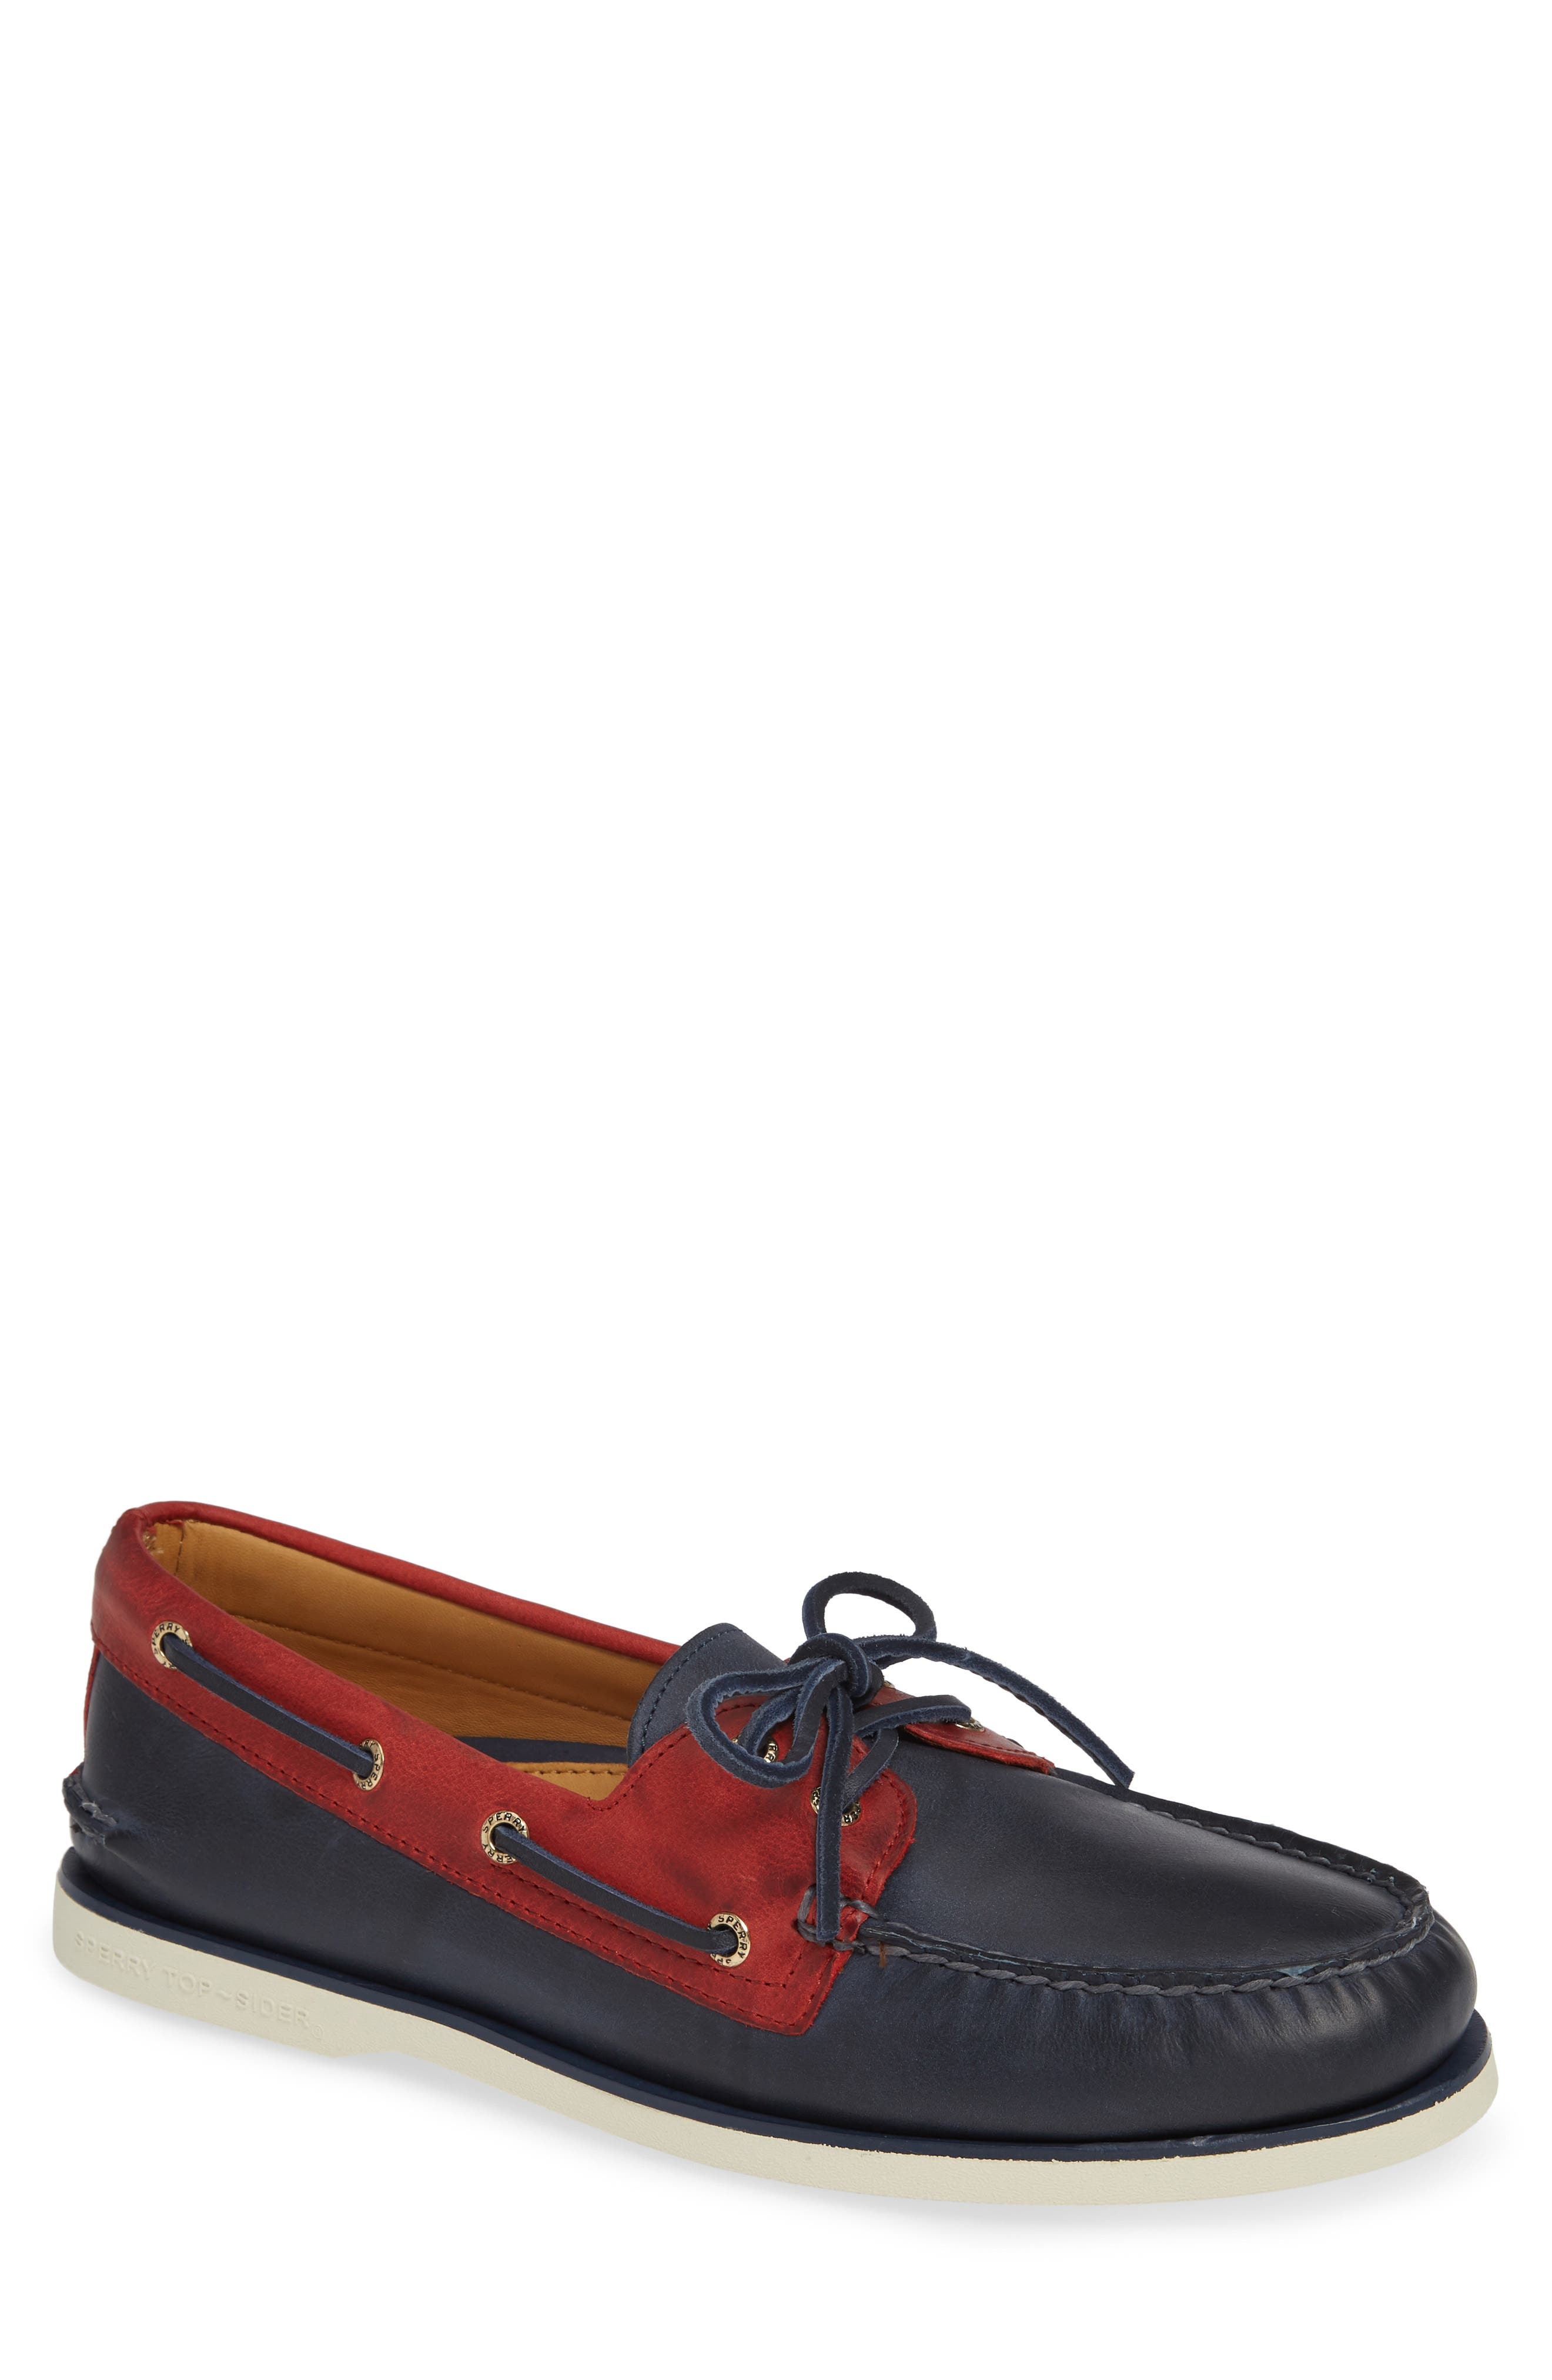 Gold Cup AO Boat Shoe,                             Main thumbnail 1, color,                             NAVY/ RED